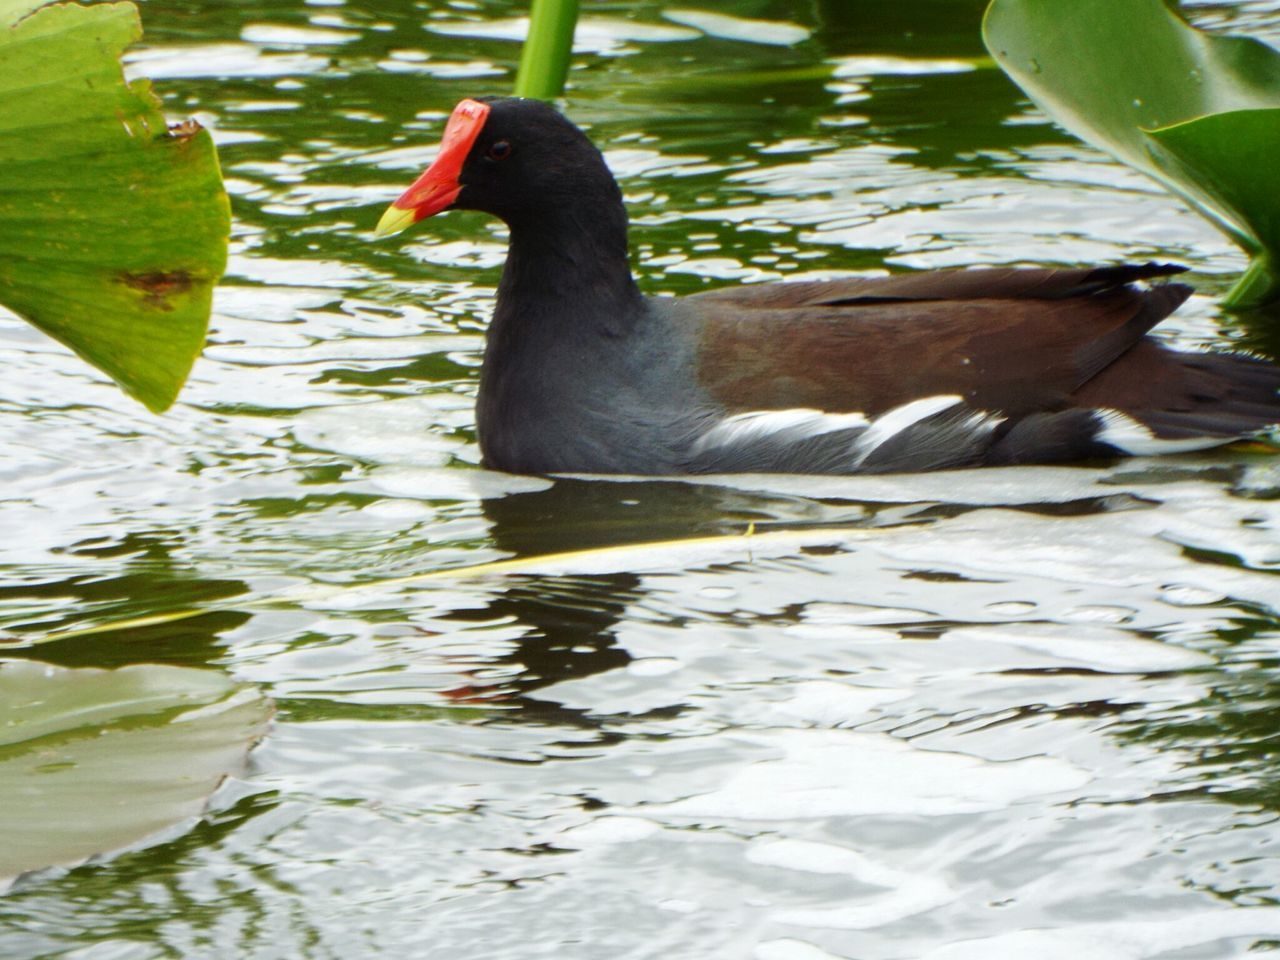 2. Hawaiian Moorhen /Alae,ula/Endangered Animals Hawwaii Birds🐦⛅ Secretive Native Florida Bird Photography Endangered Species Animals In The Wild Water Lily One Animal Solitude Wet Day Outdoors Nature Beauty In Nature Water Bird Floating On Water Animals In The Wild animal themes water bird wildlife waterbirds Legend